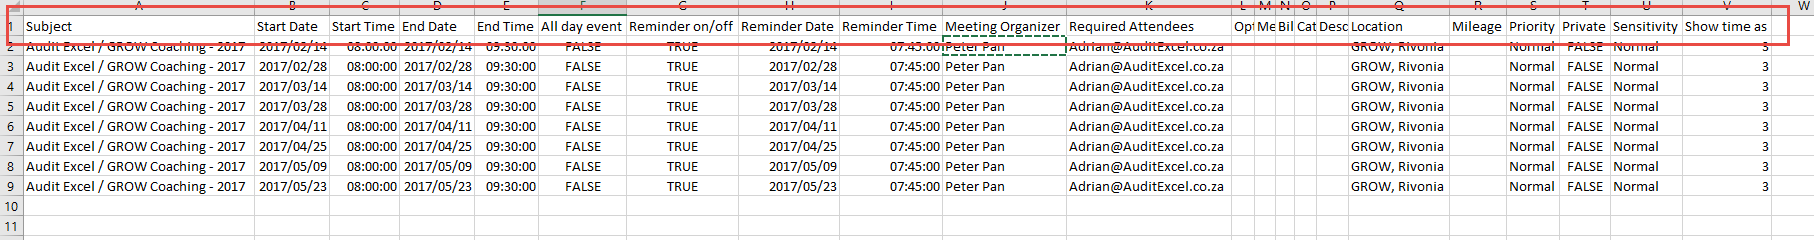 Import Excel appointments into Outlook calendar